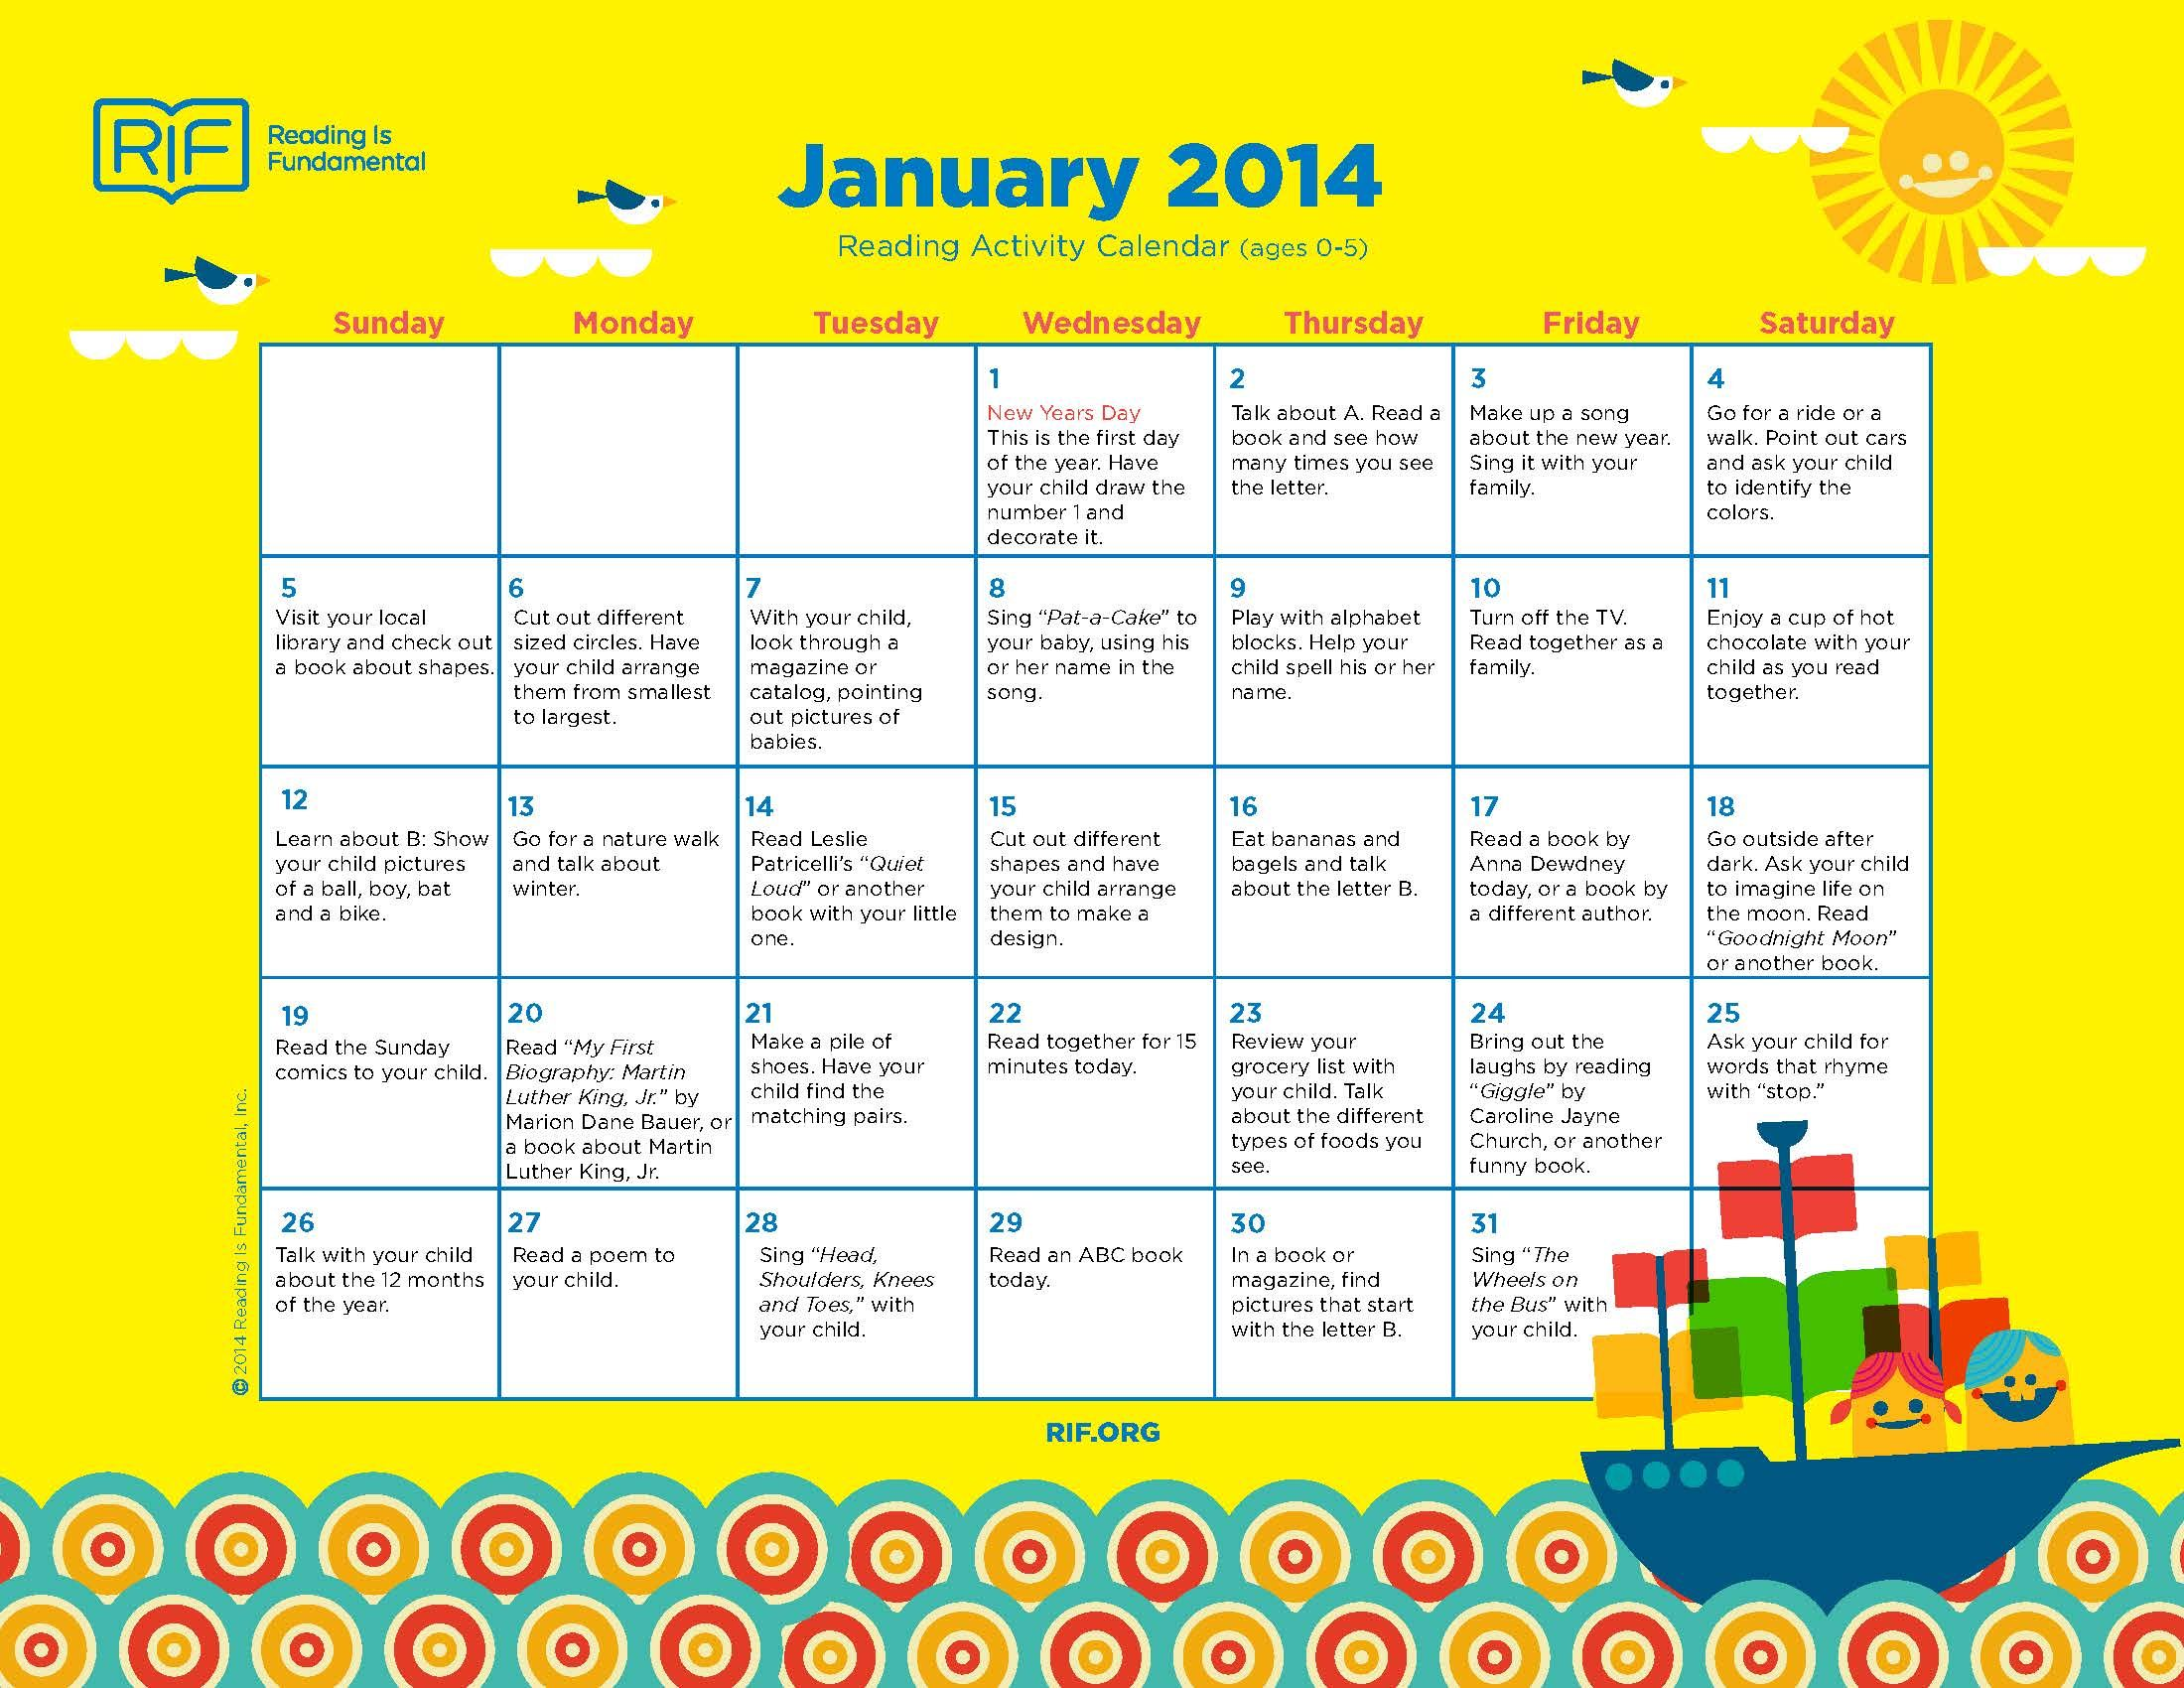 Free Downloads Of Monthly Reading Activity Calendars From Reading Is Fundamental